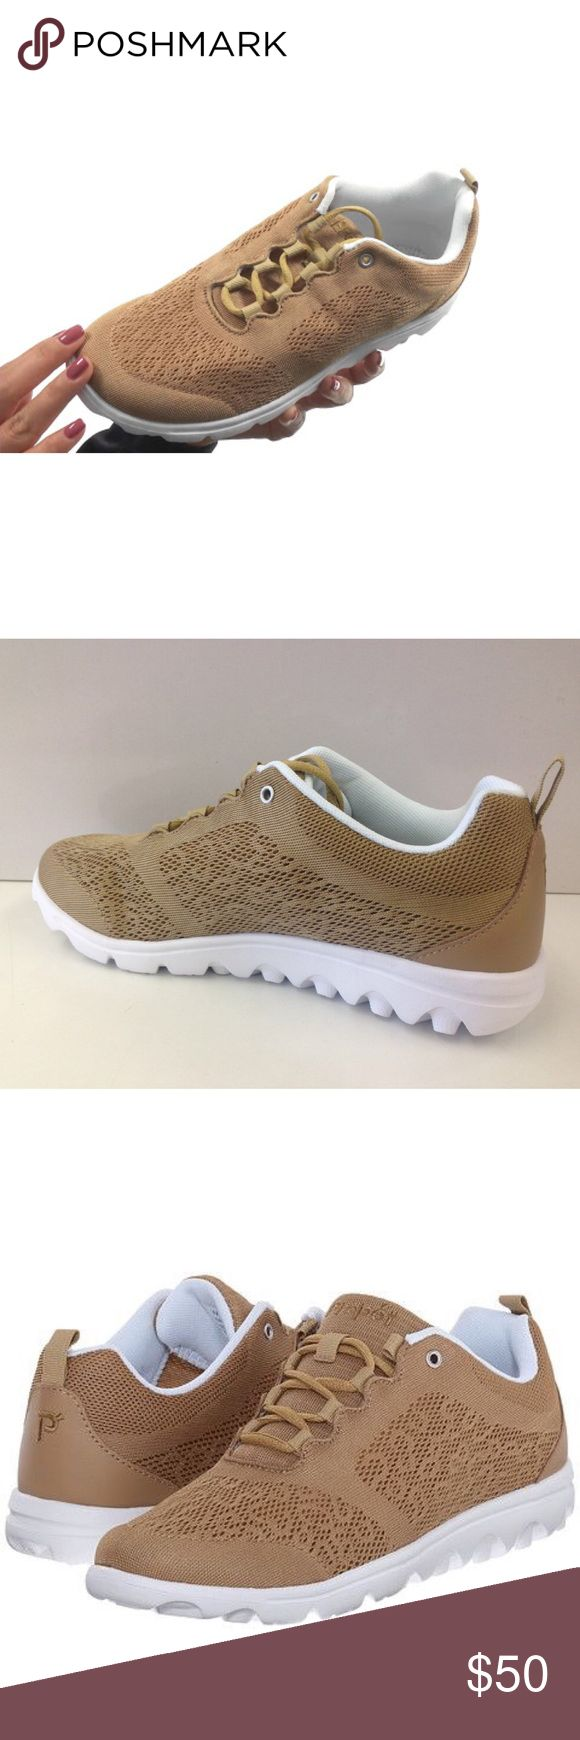 Propét Mesh Lightweight Sneakers The Propét series is here with engineered mesh and a lightweight outsole. Mesh. Imported. Rubber sole Lace-up sneaker featuring lightweight flexible outsole and removable footbed. Honey Color Propet Shoes Sneakers